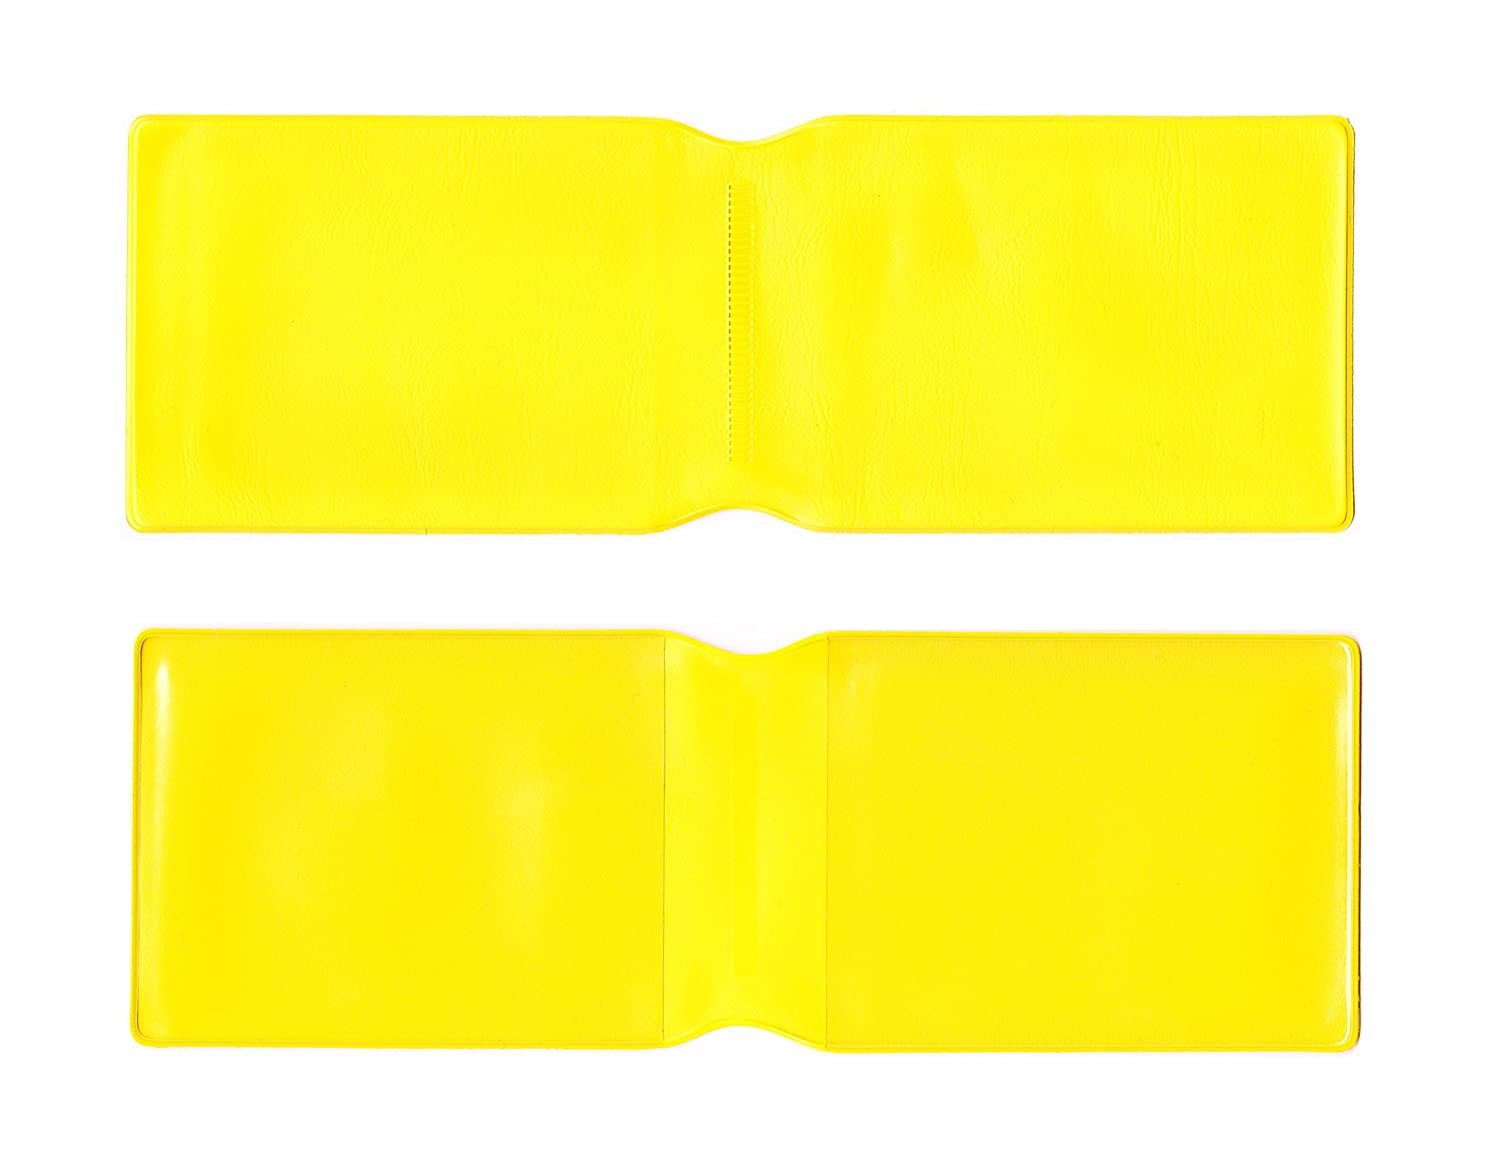 1 x Yellow Plastic Oyster Card Wallet / Credit Card Holder / ID Card Wallet / Business Card Holder / Travel Pass Cover - MADE IN THE UK